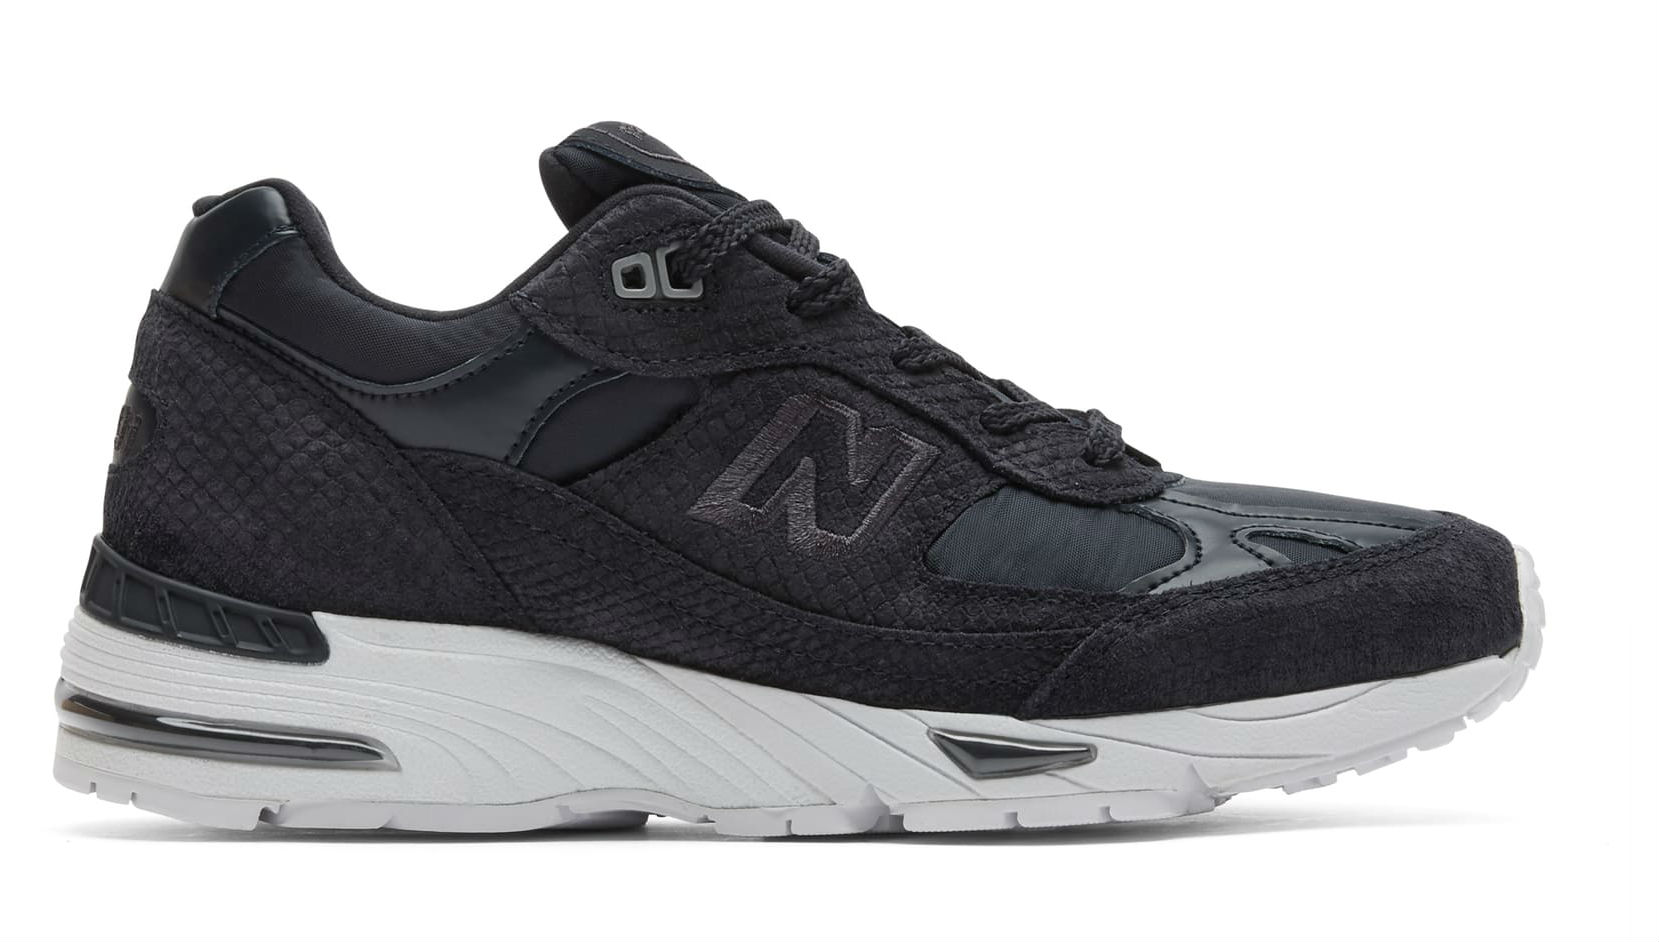 New Balance 991 Made in UK Reptile Luxe